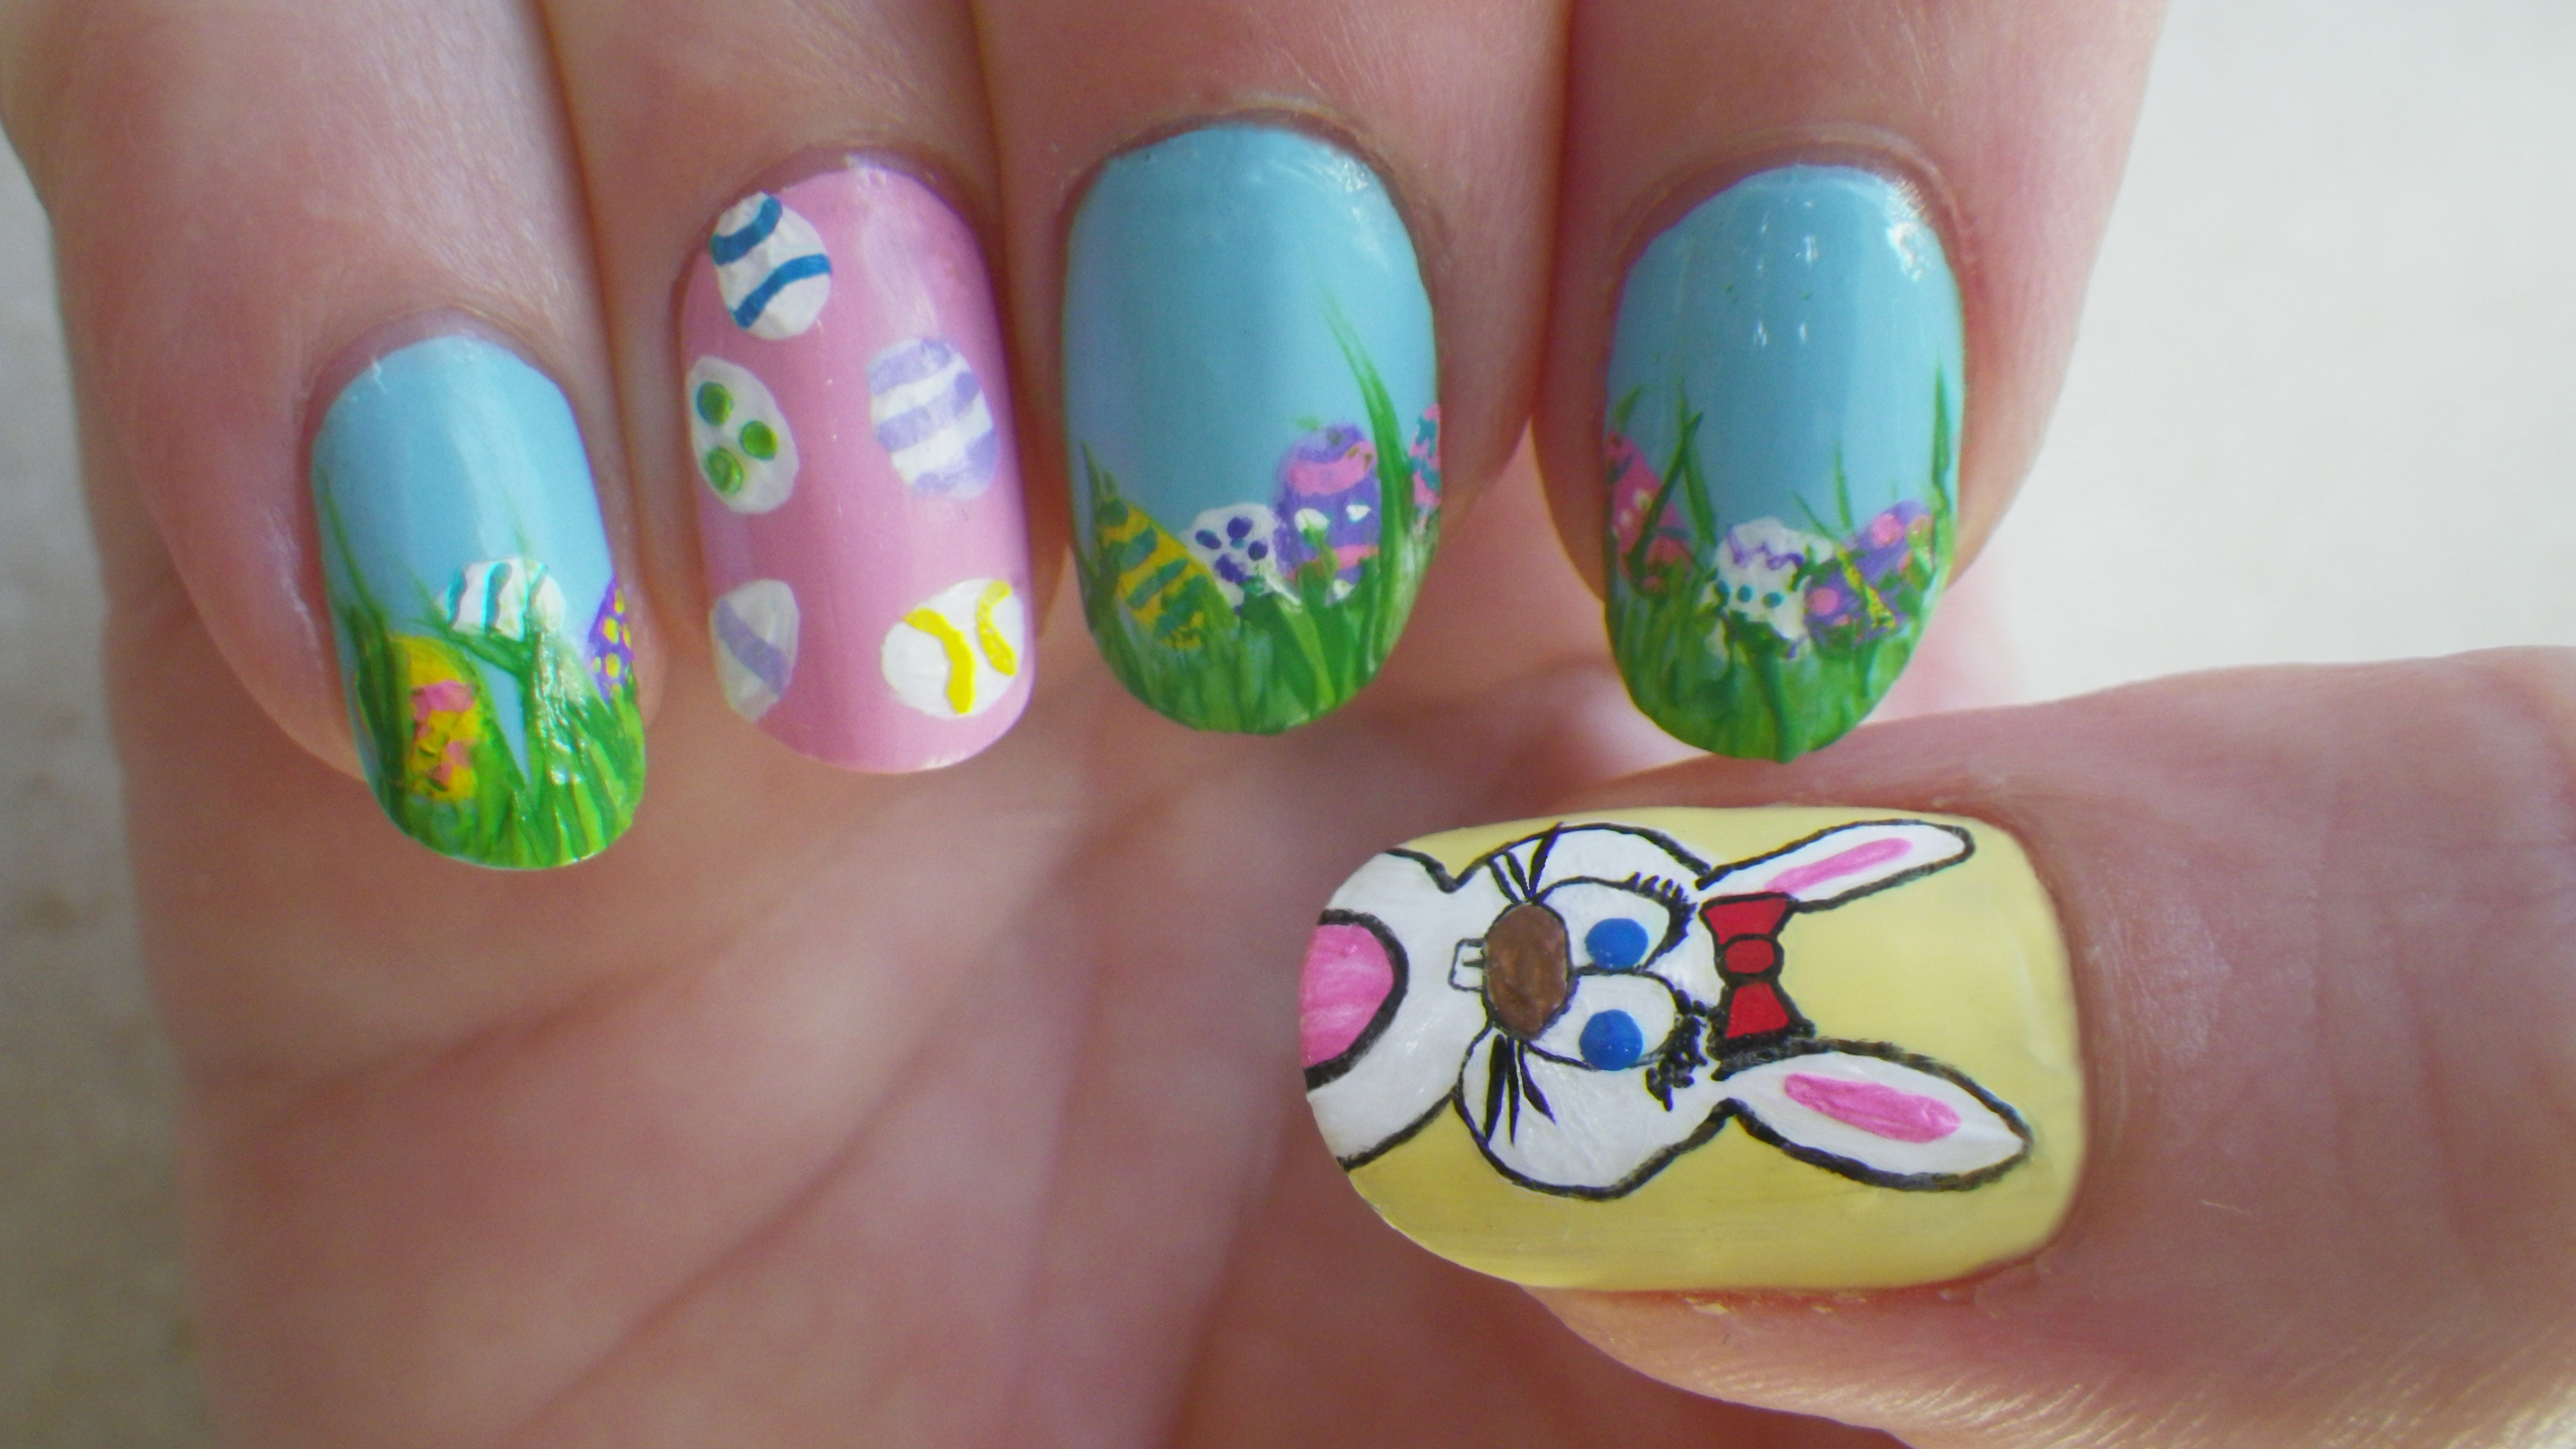 Easter Nails 30 Awesome Easter Nail Designs 2015 30 Awesome Easter Nail Designs 2015 easter nail designs 6